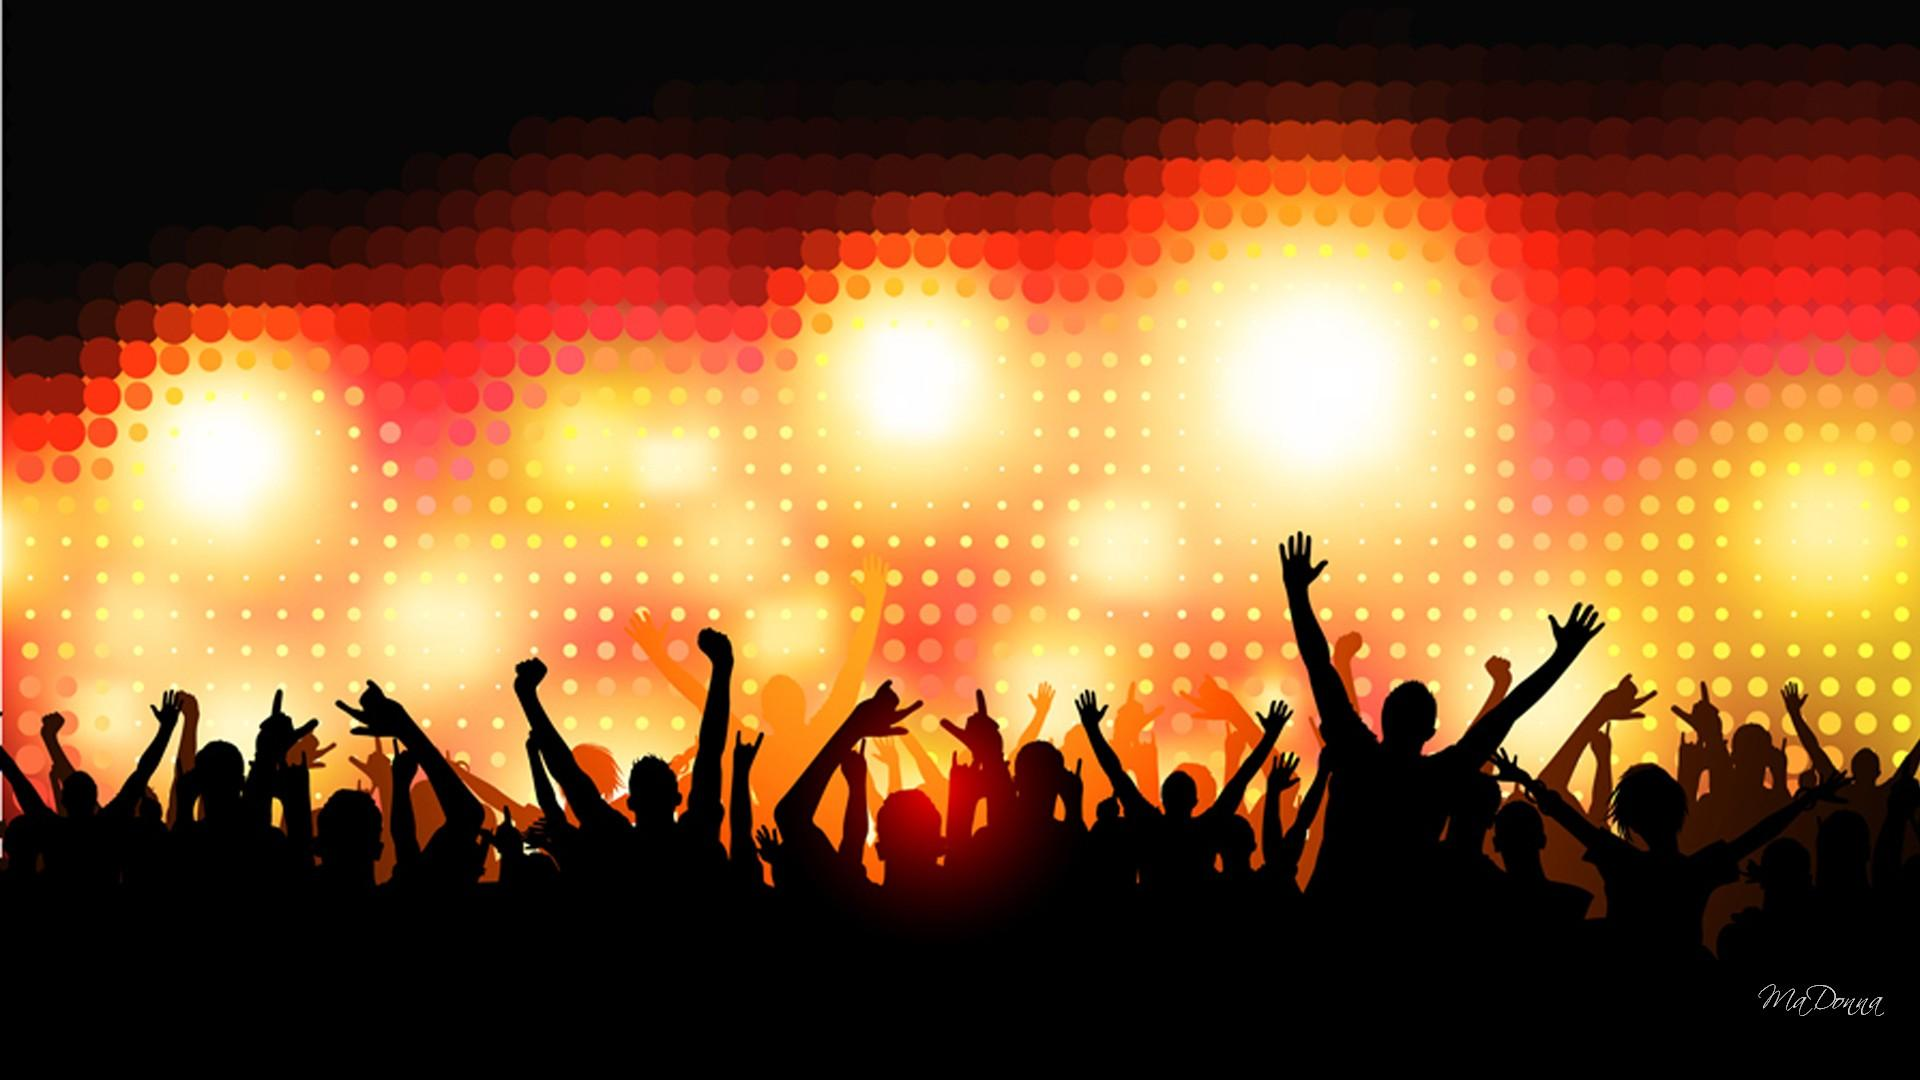 59] Party Background Images on WallpaperSafari 1920x1080